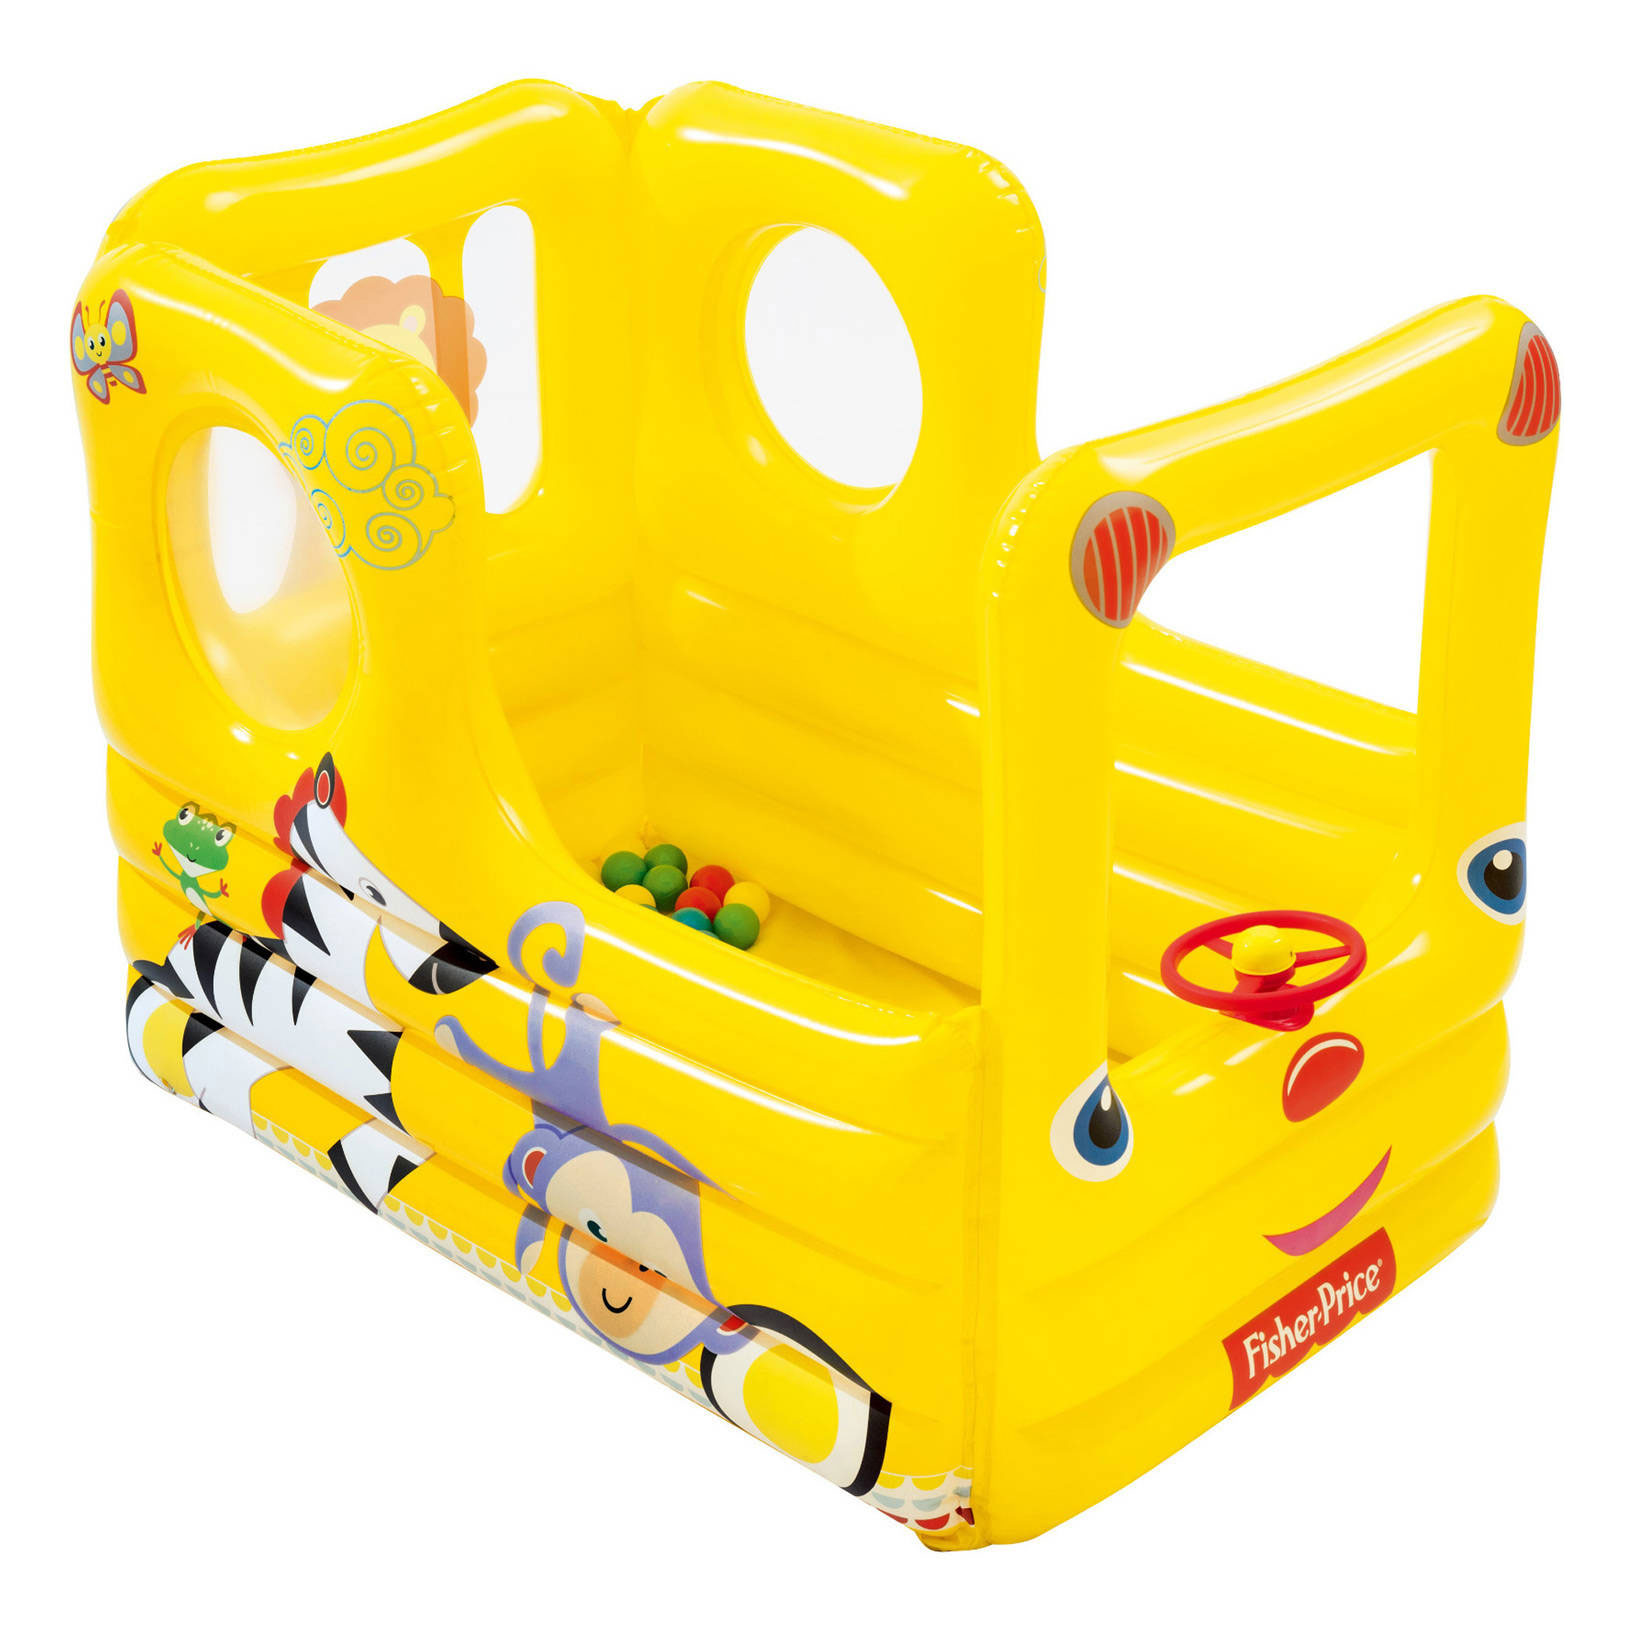 Fisher Price Lil' Learner School Bus Inflatable Play House Ball Pit with Balls by Fisher-Price